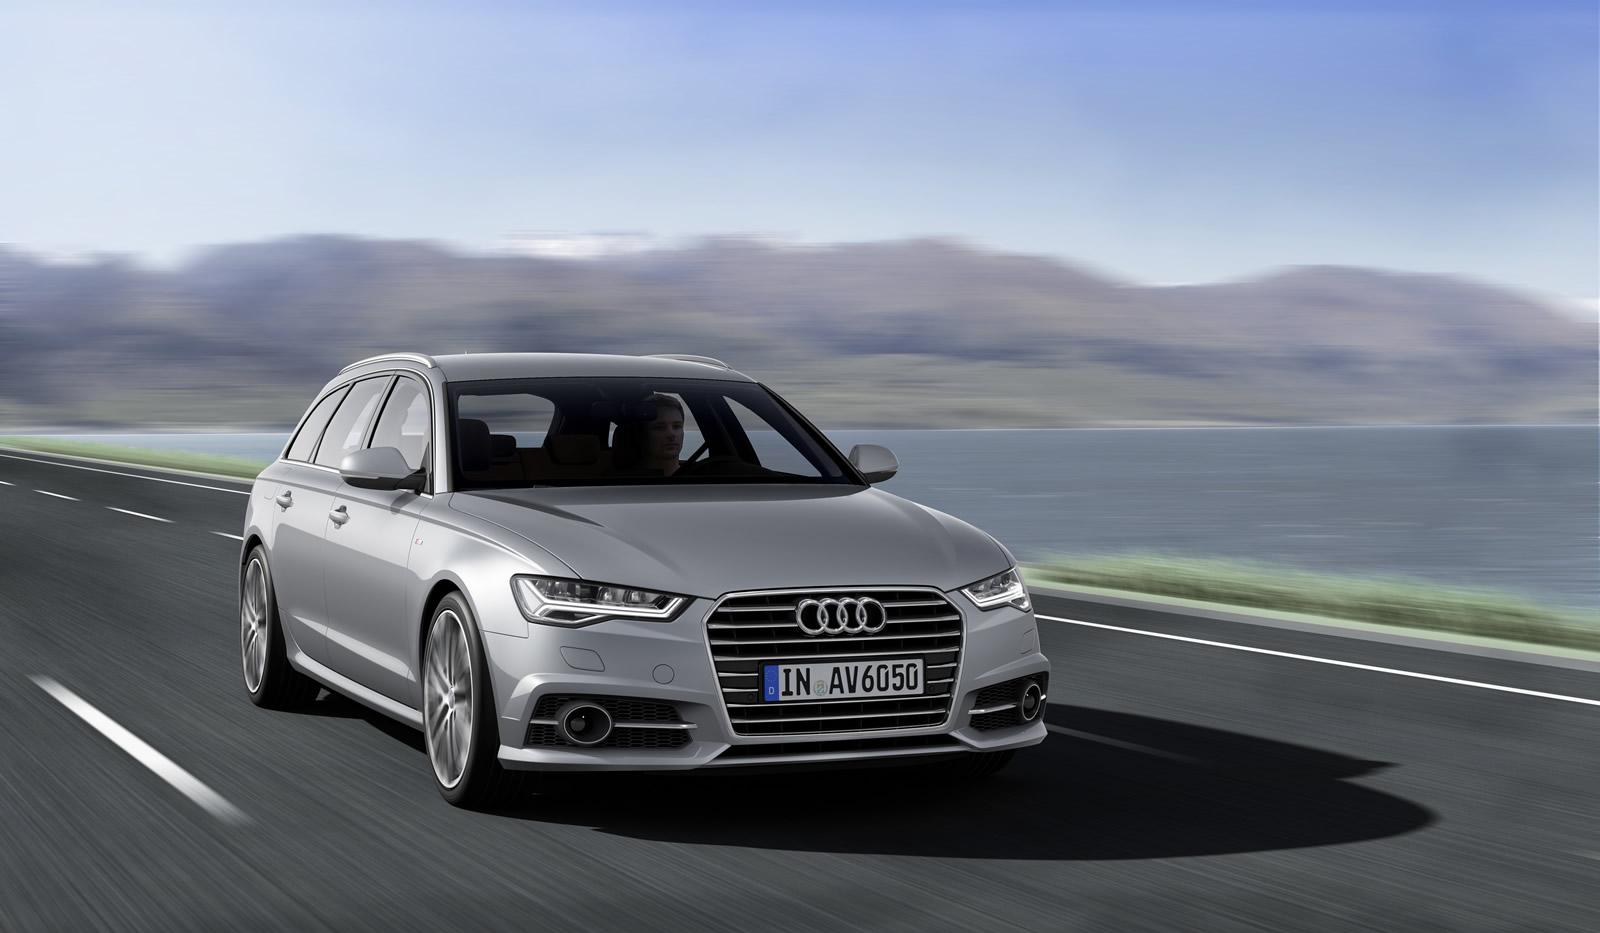 2015 Audi A6 Facelift Makes Video Debut In Avant Ultra